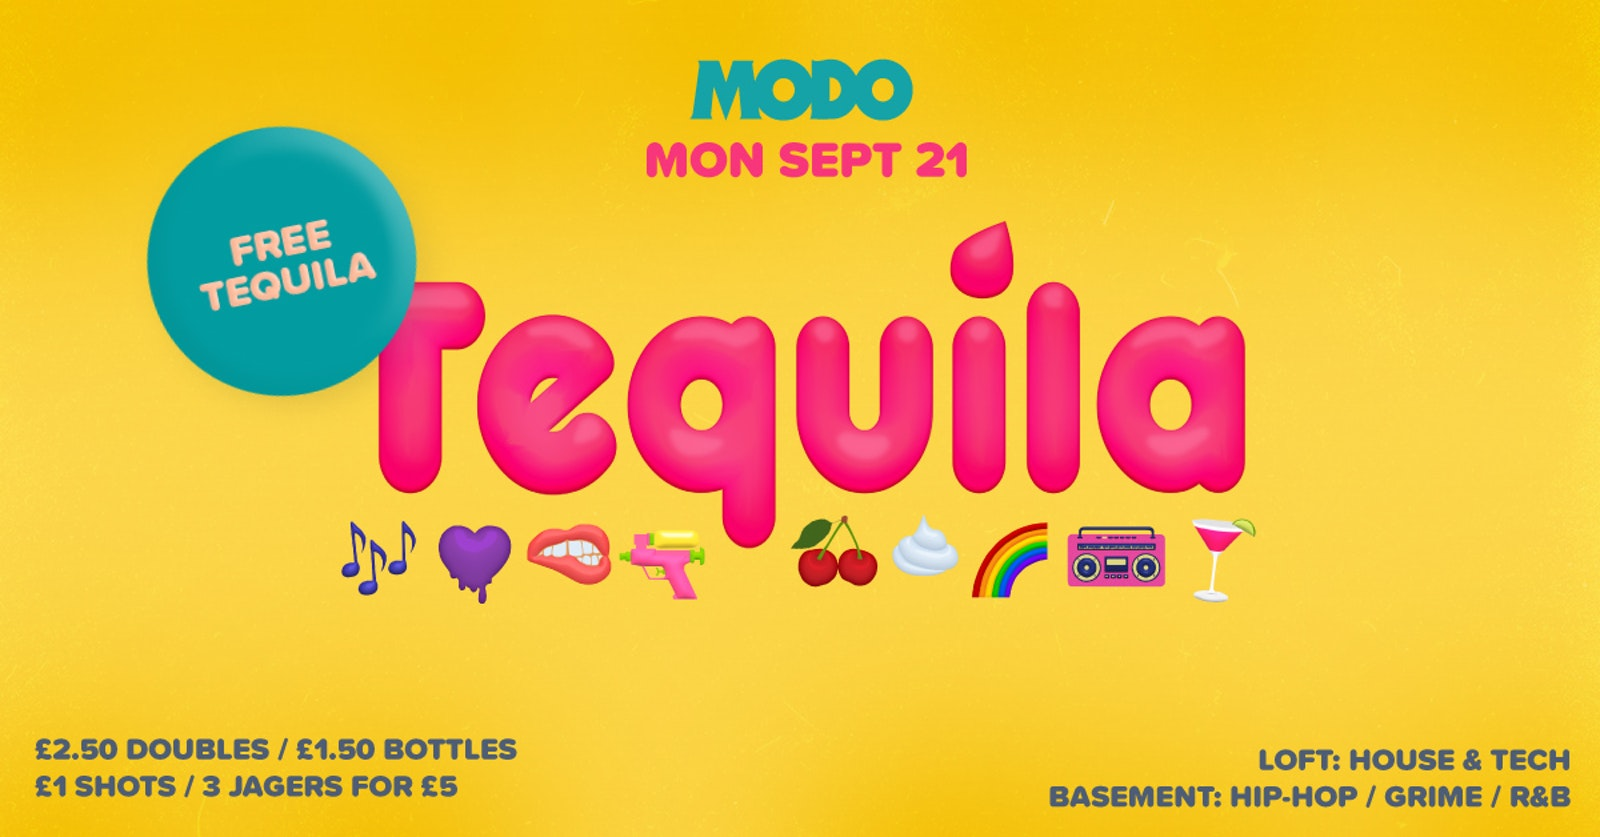 Tequila : Freshers Monday : Modo, Concert Square